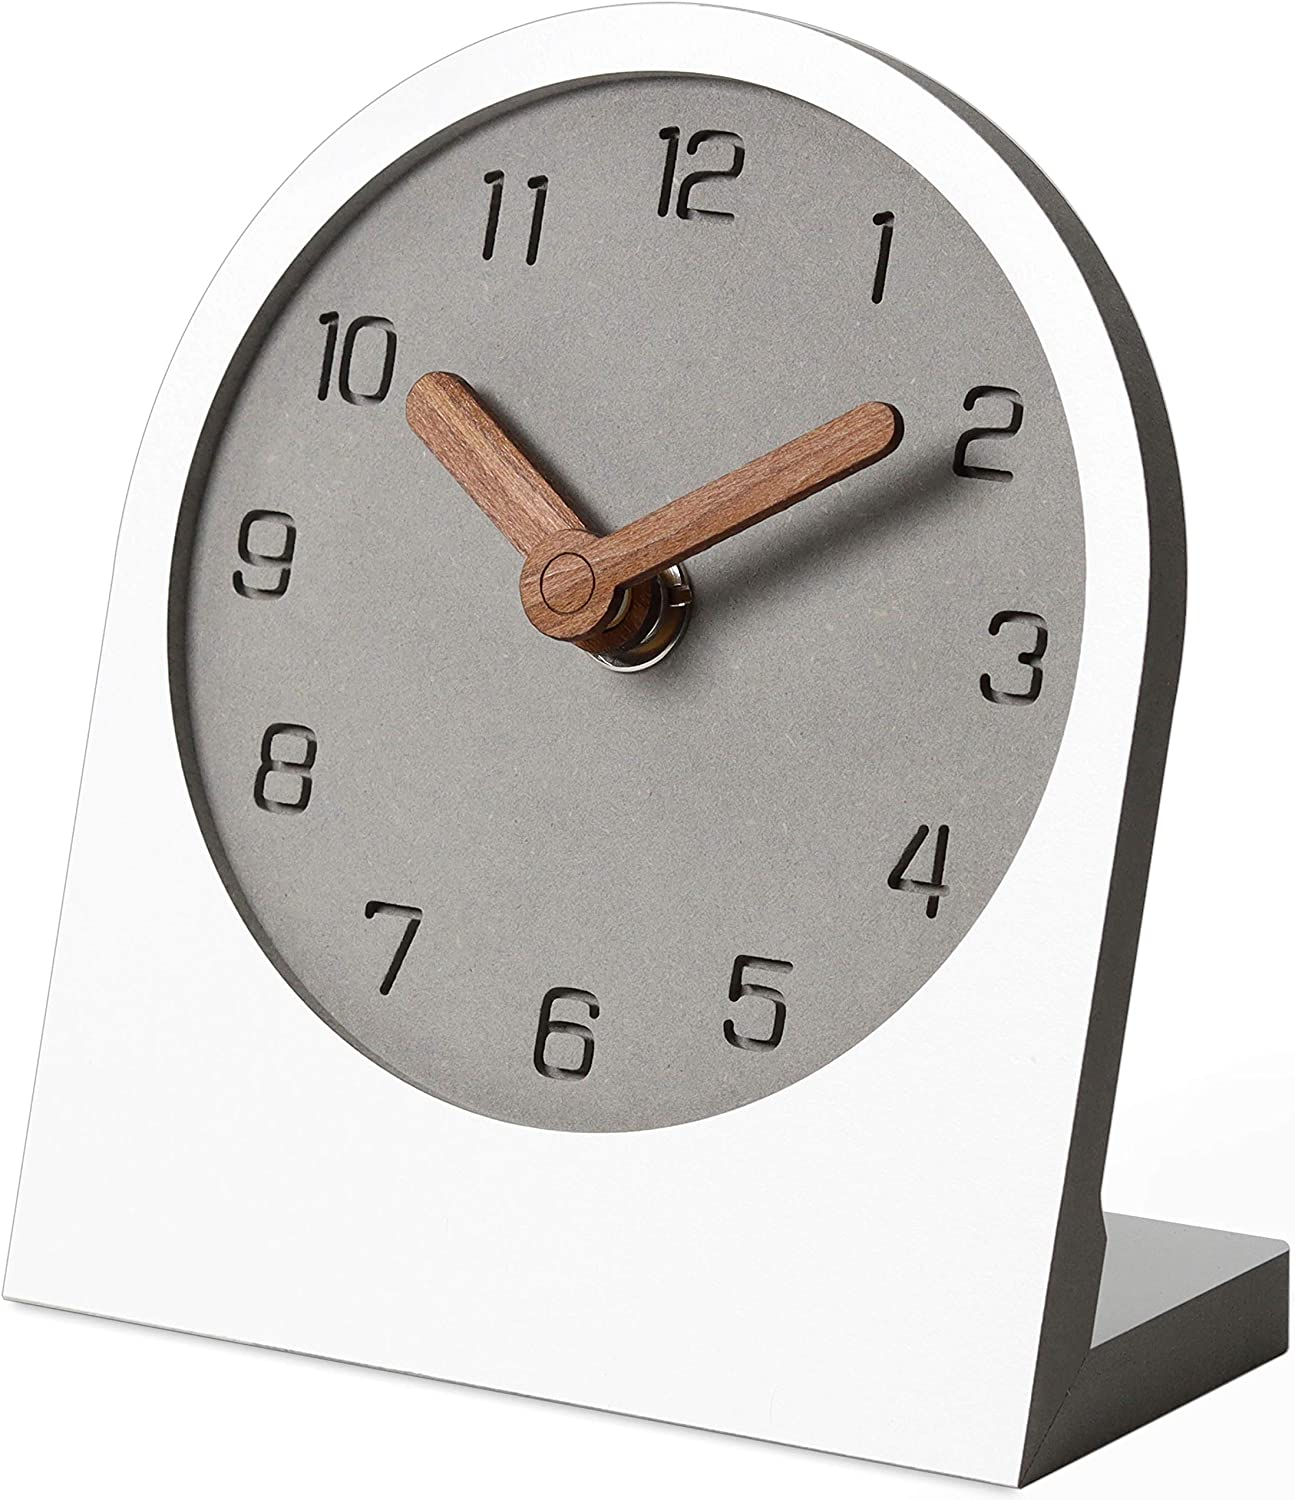 mooqs Wooden Silent Non-Ticking Battery Operated Decorative Small Mini Analog Modern Shelf Desk Table Clock for Home, Office, Living Room, Bed Room (White)